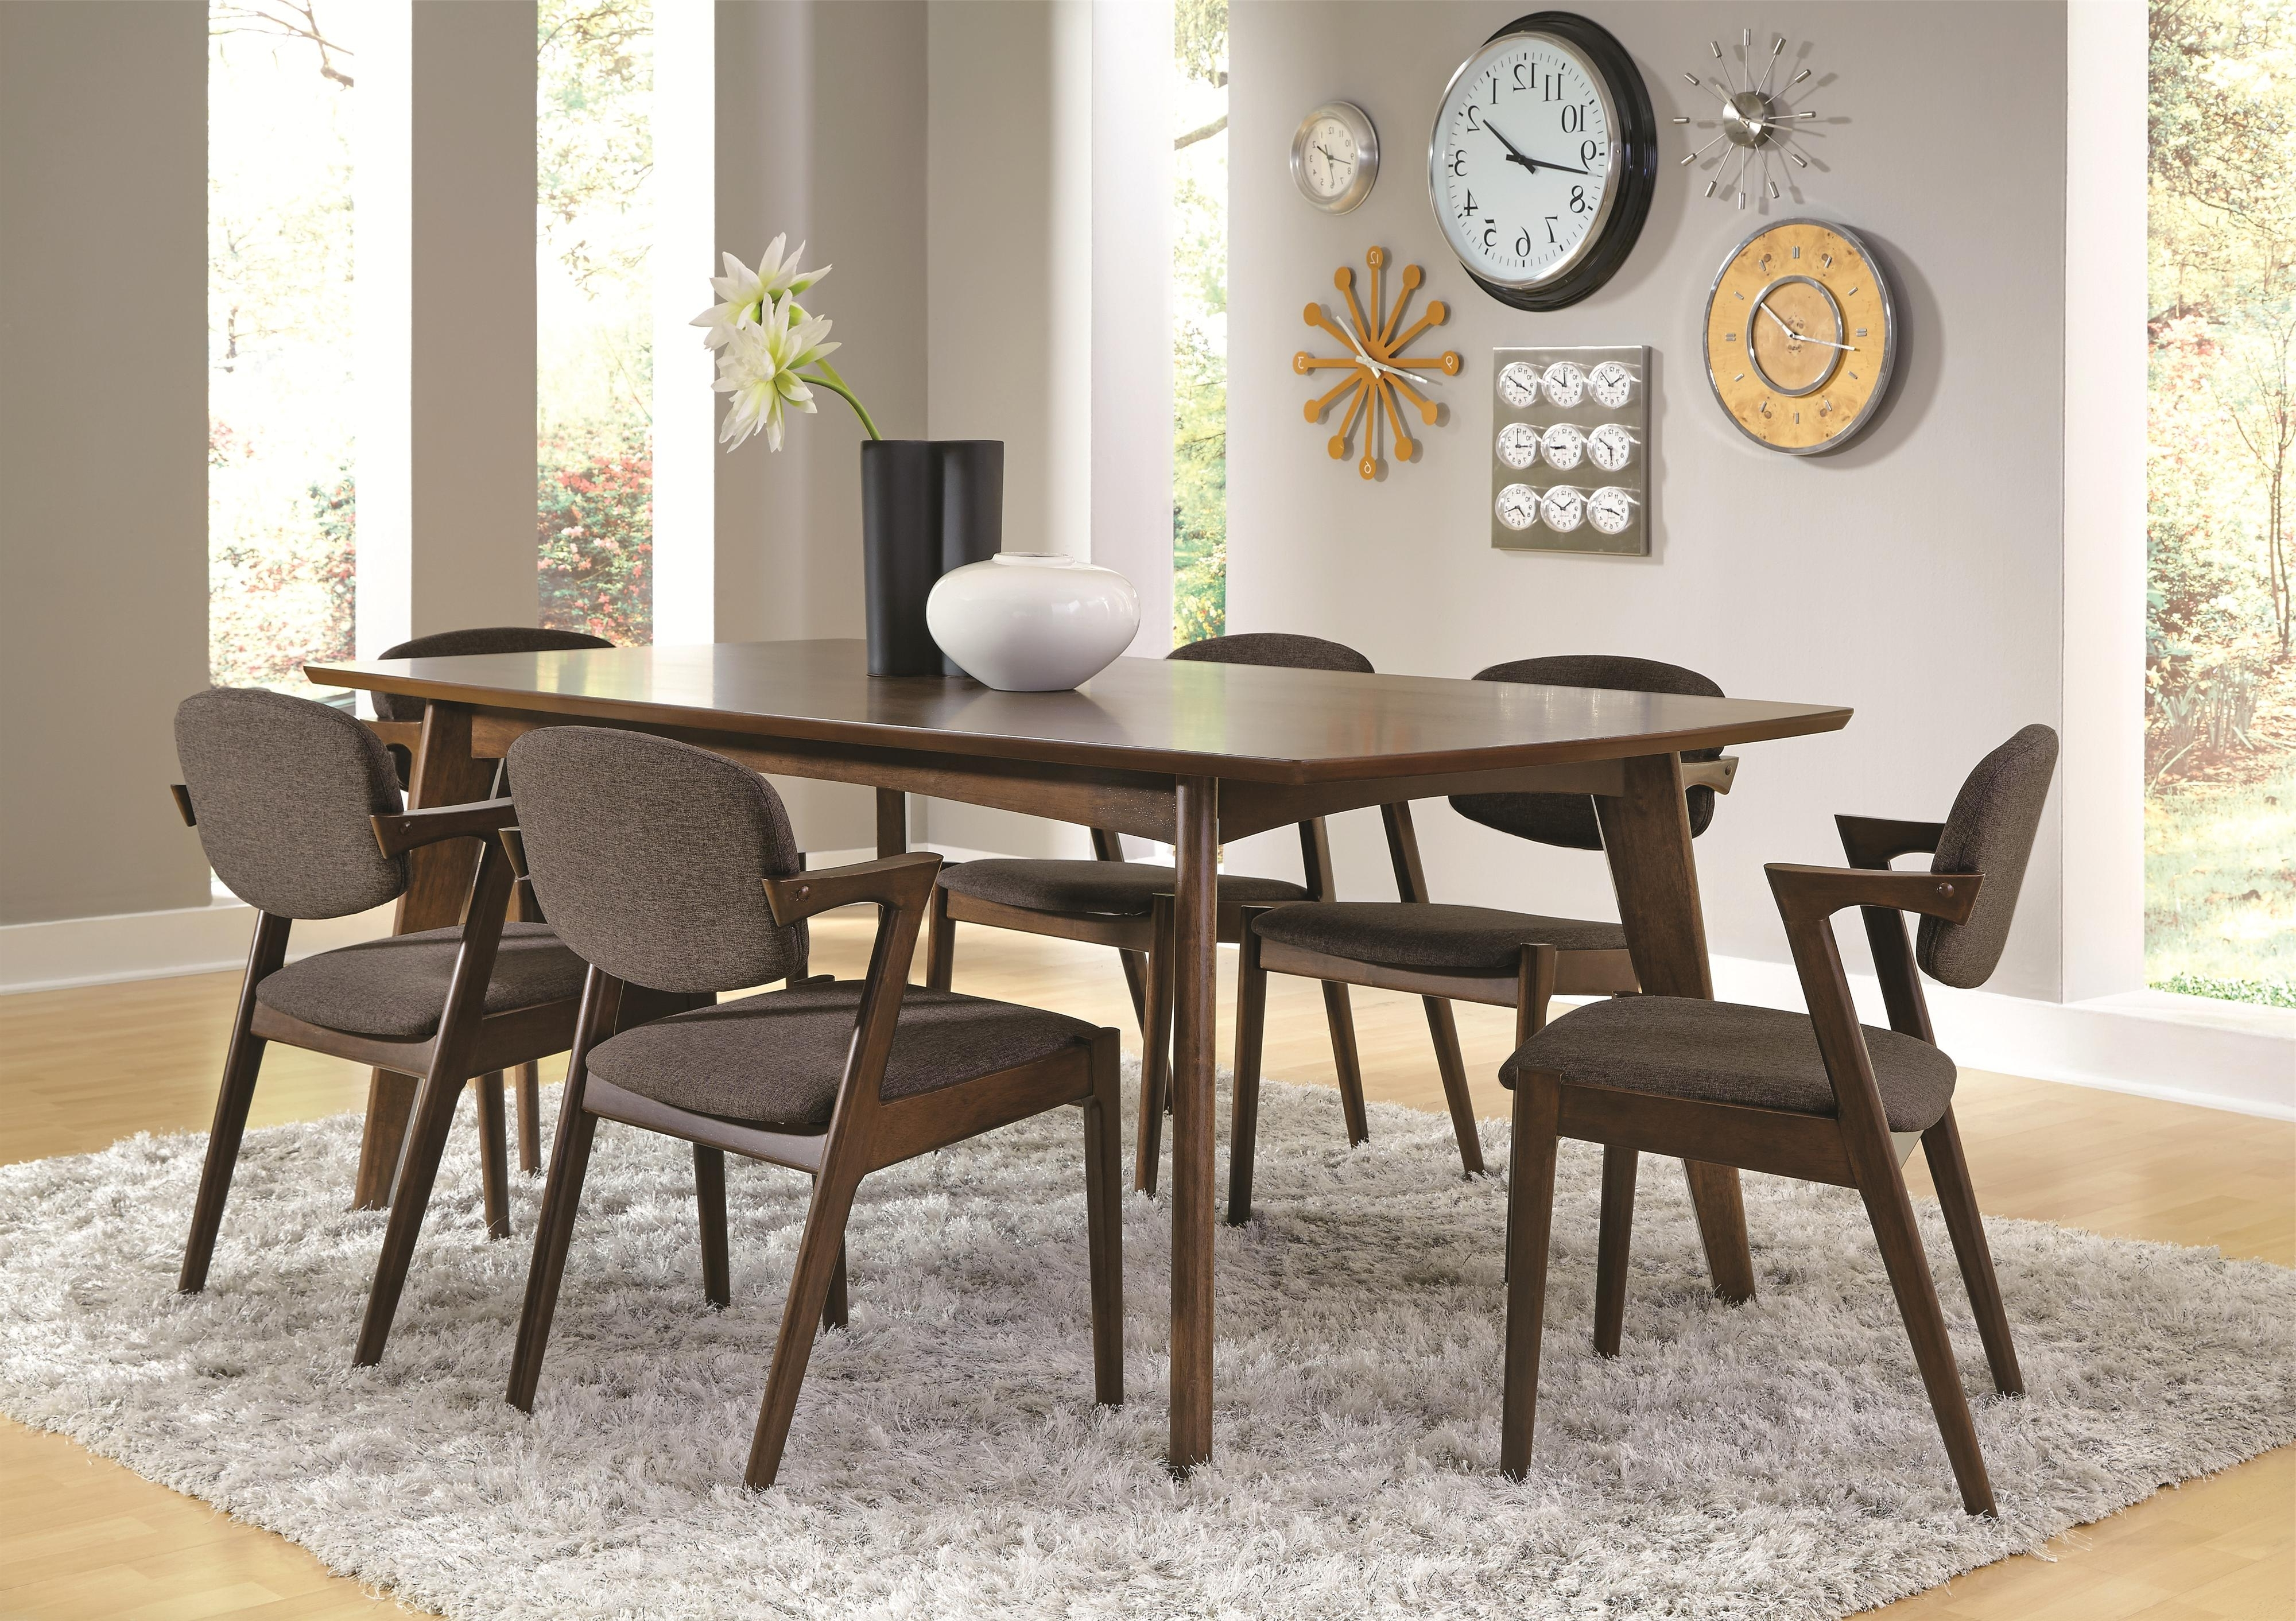 Value City Throughout Modern Dining Table And Chairs (Gallery 4 of 25)